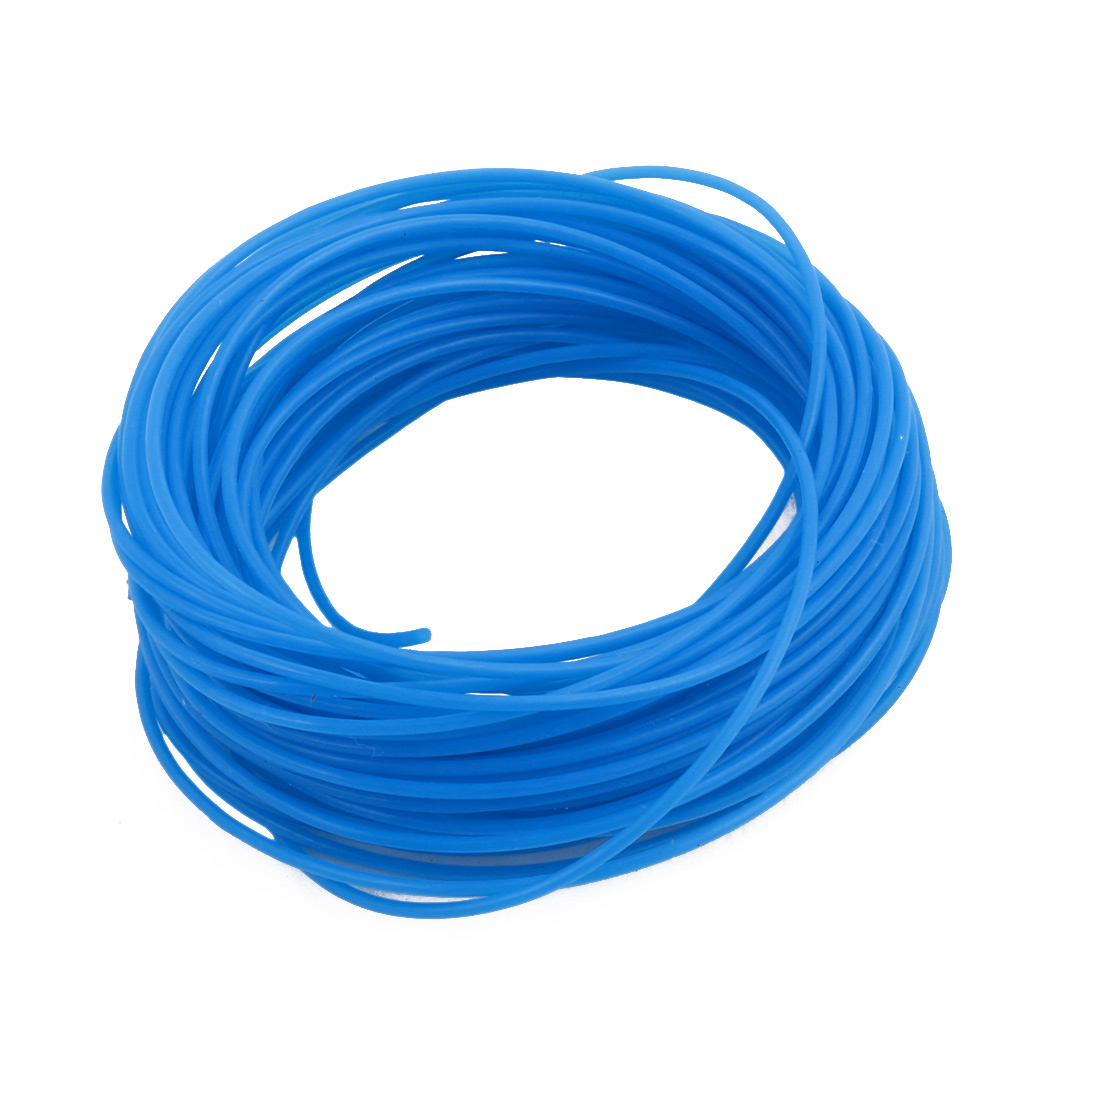 0.96mm x 1.26mm PTFE Resistant High Temperature Blue Tubing 5 Meters 16.4Ft